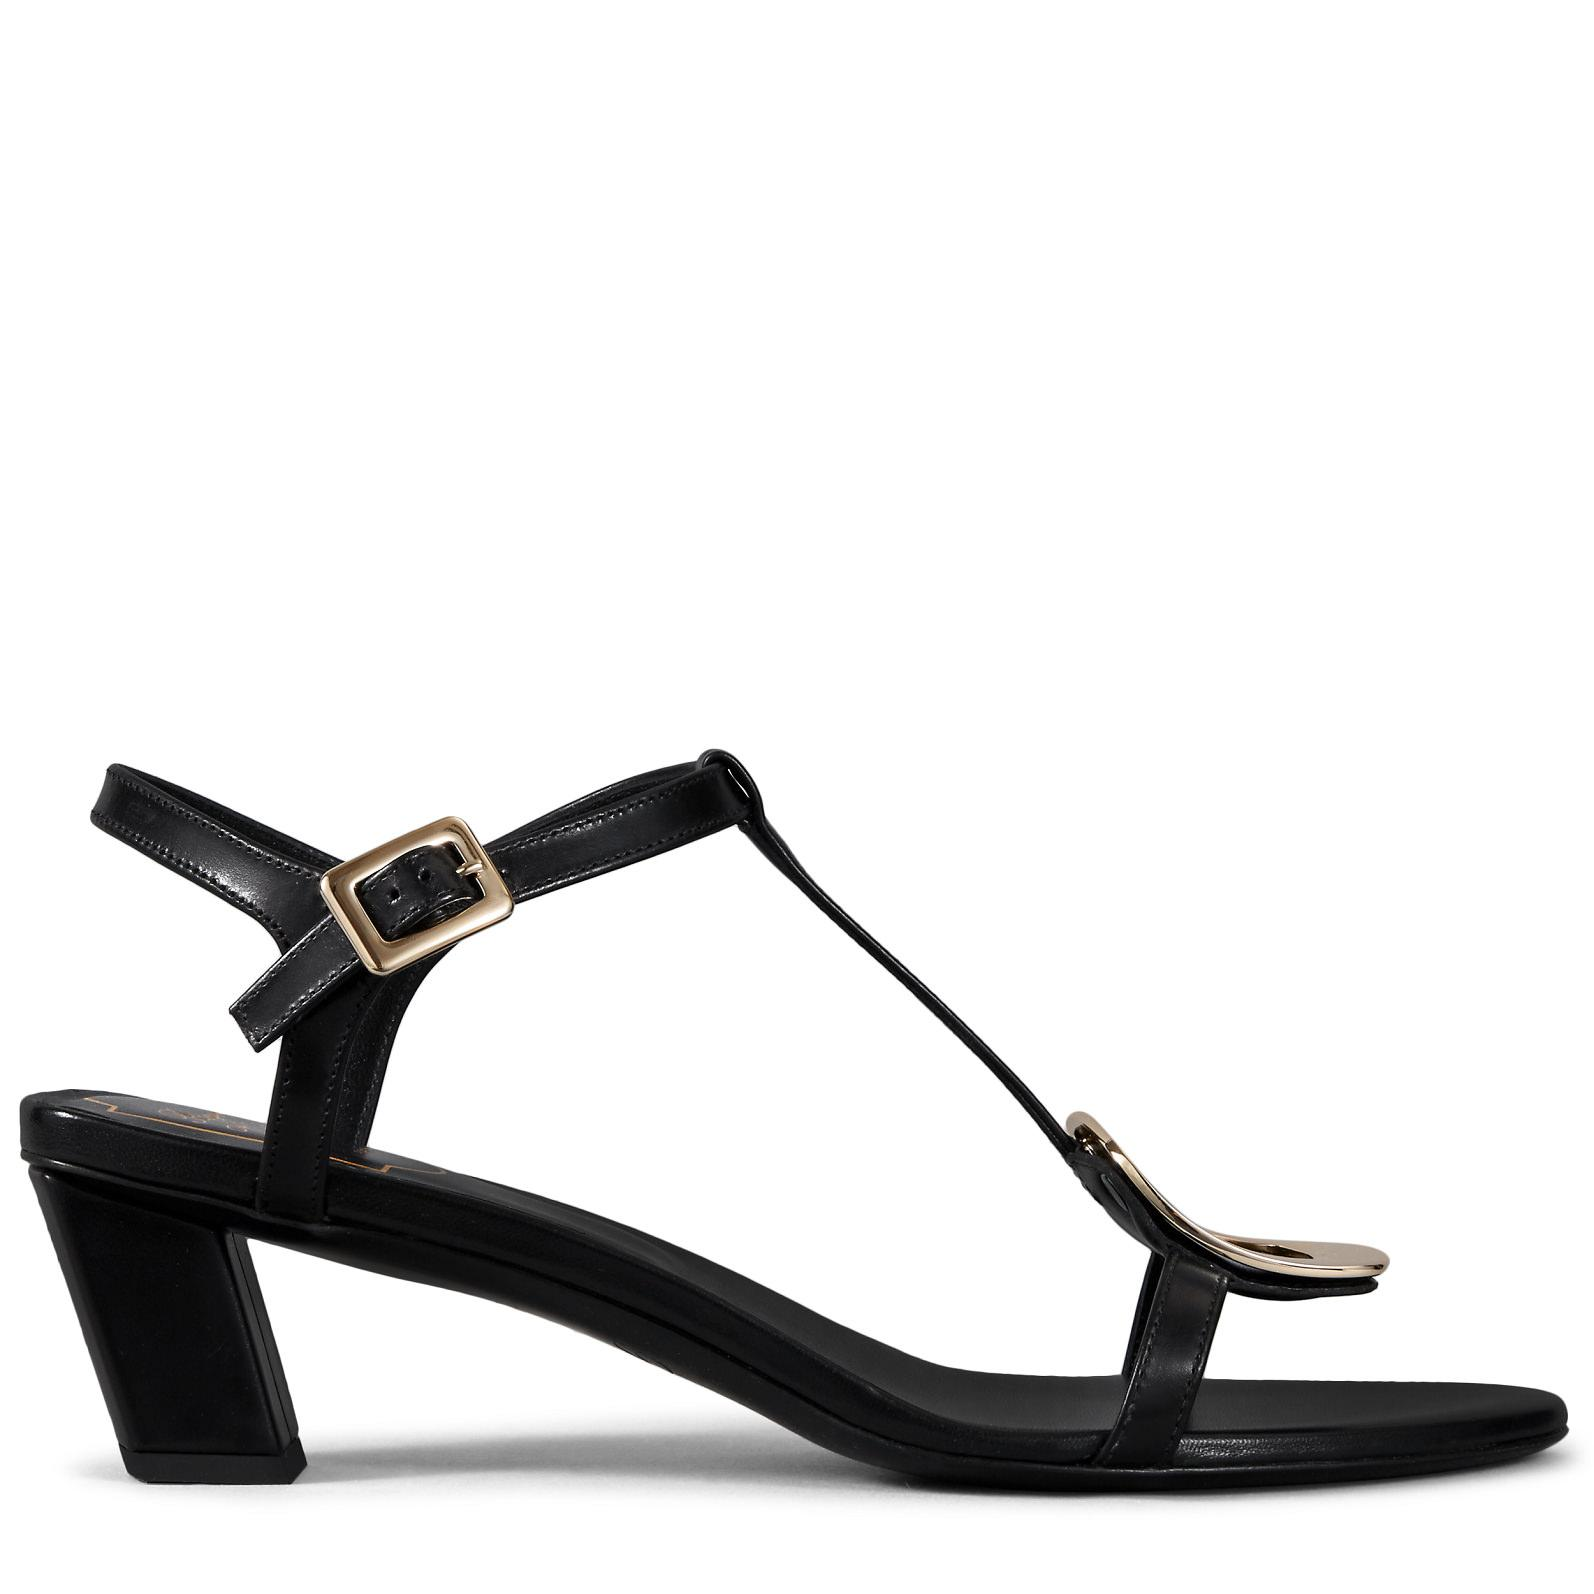 feecf81059fd Lyst - Roger Vivier Chips Sandals In Leather in Black